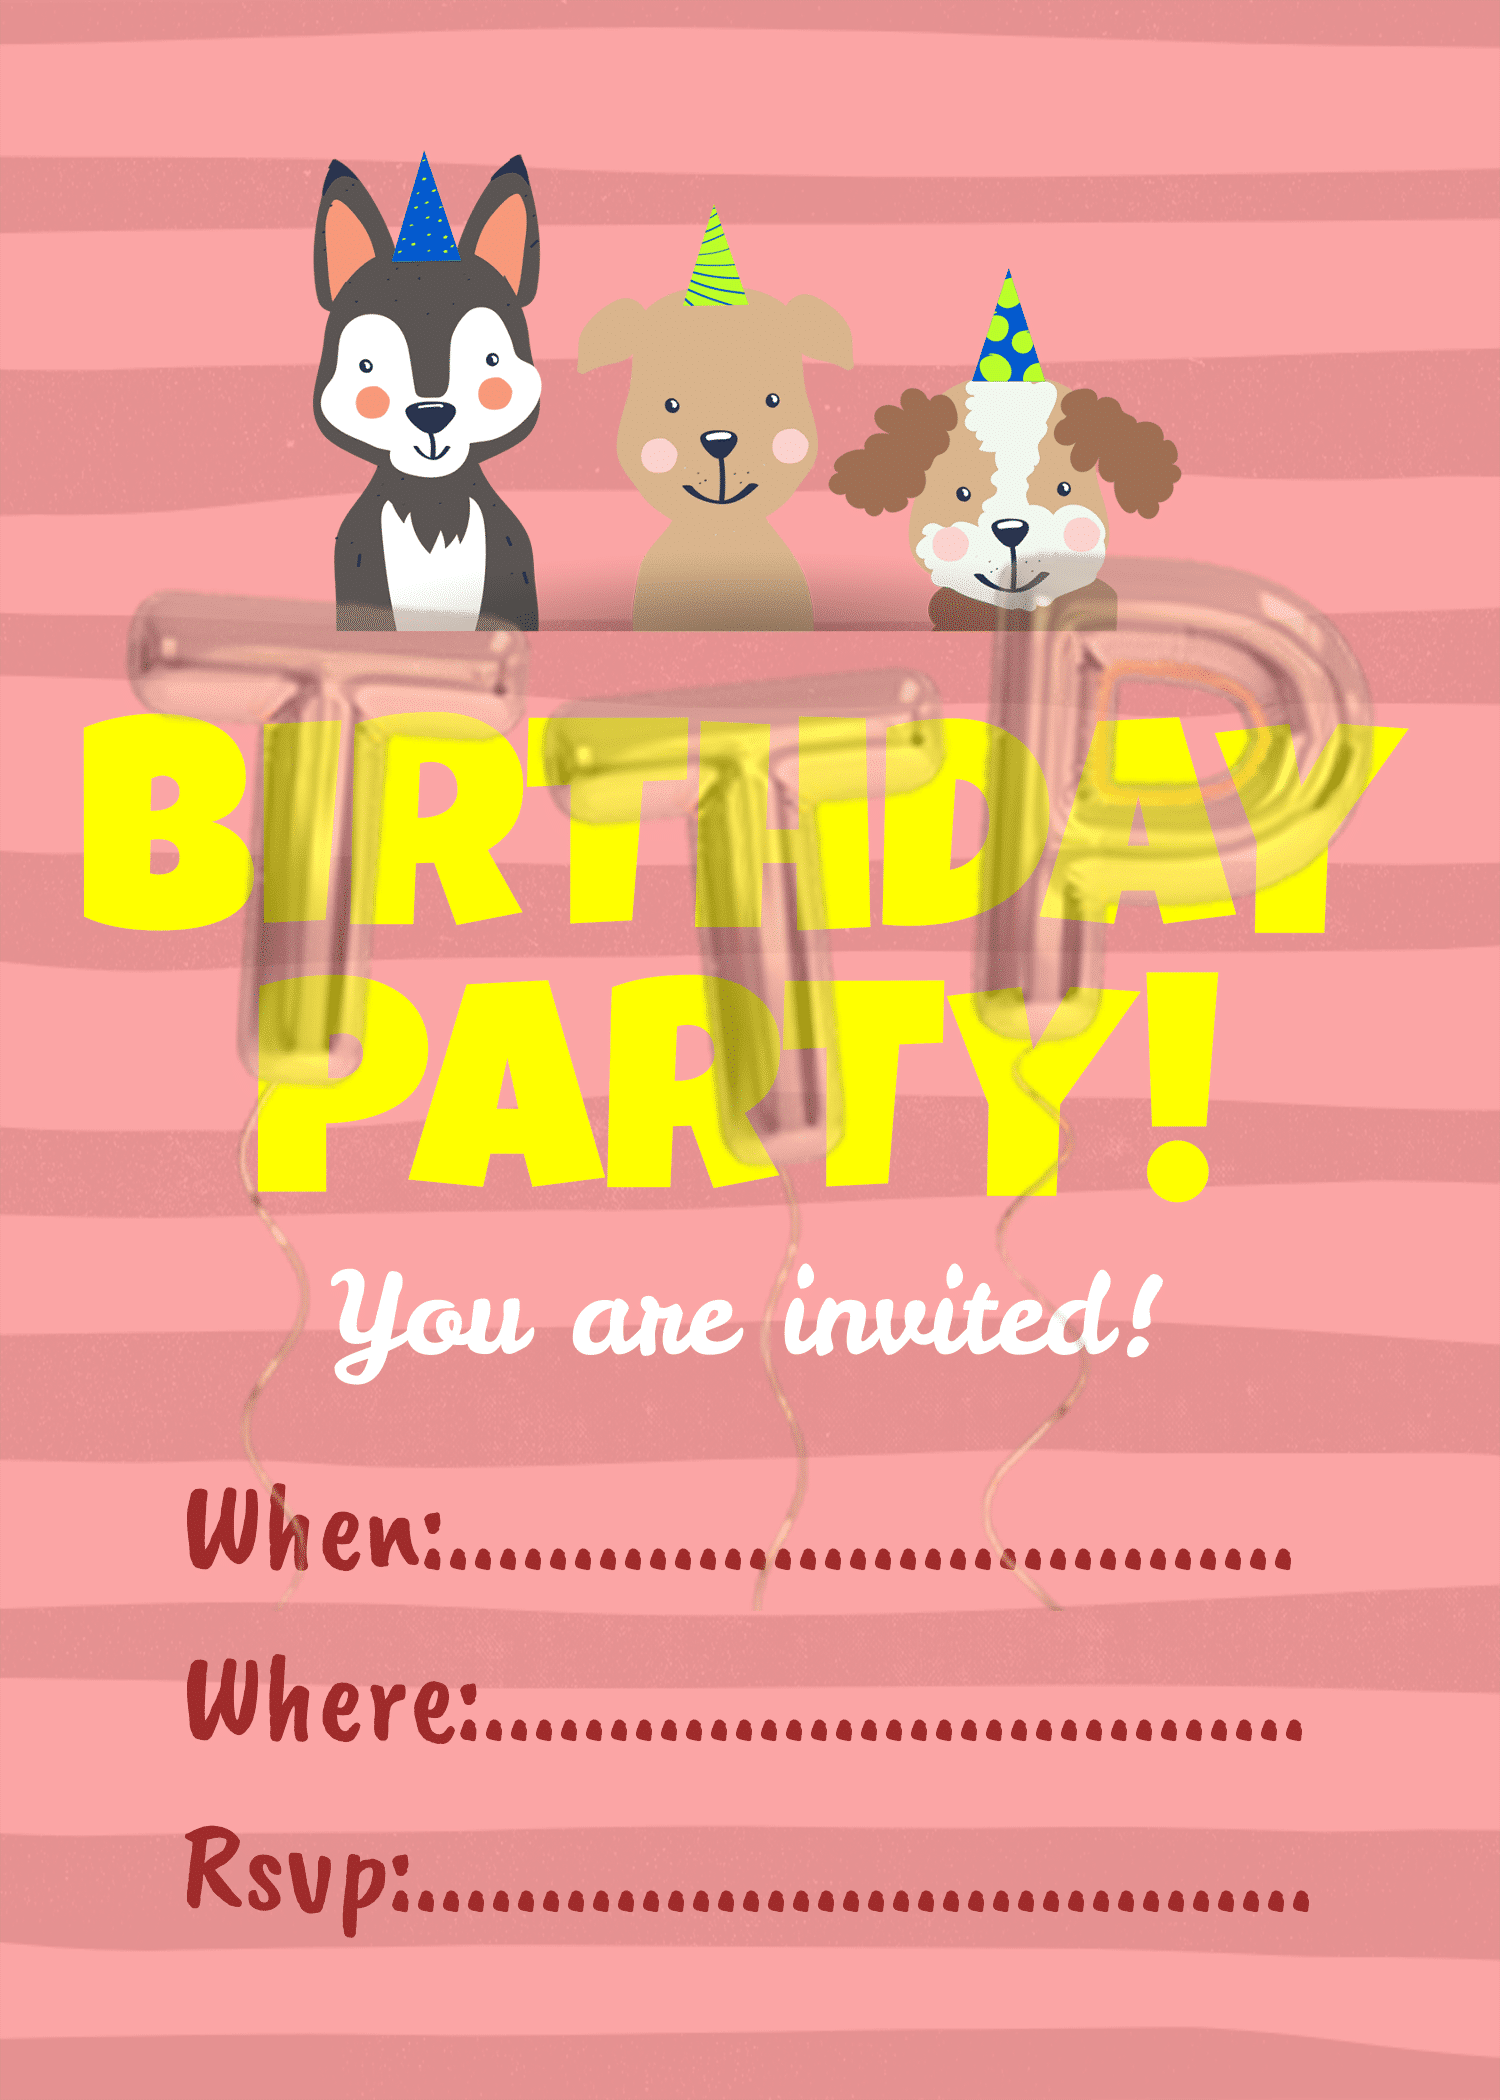 puppies ping BG free download invitation watermark